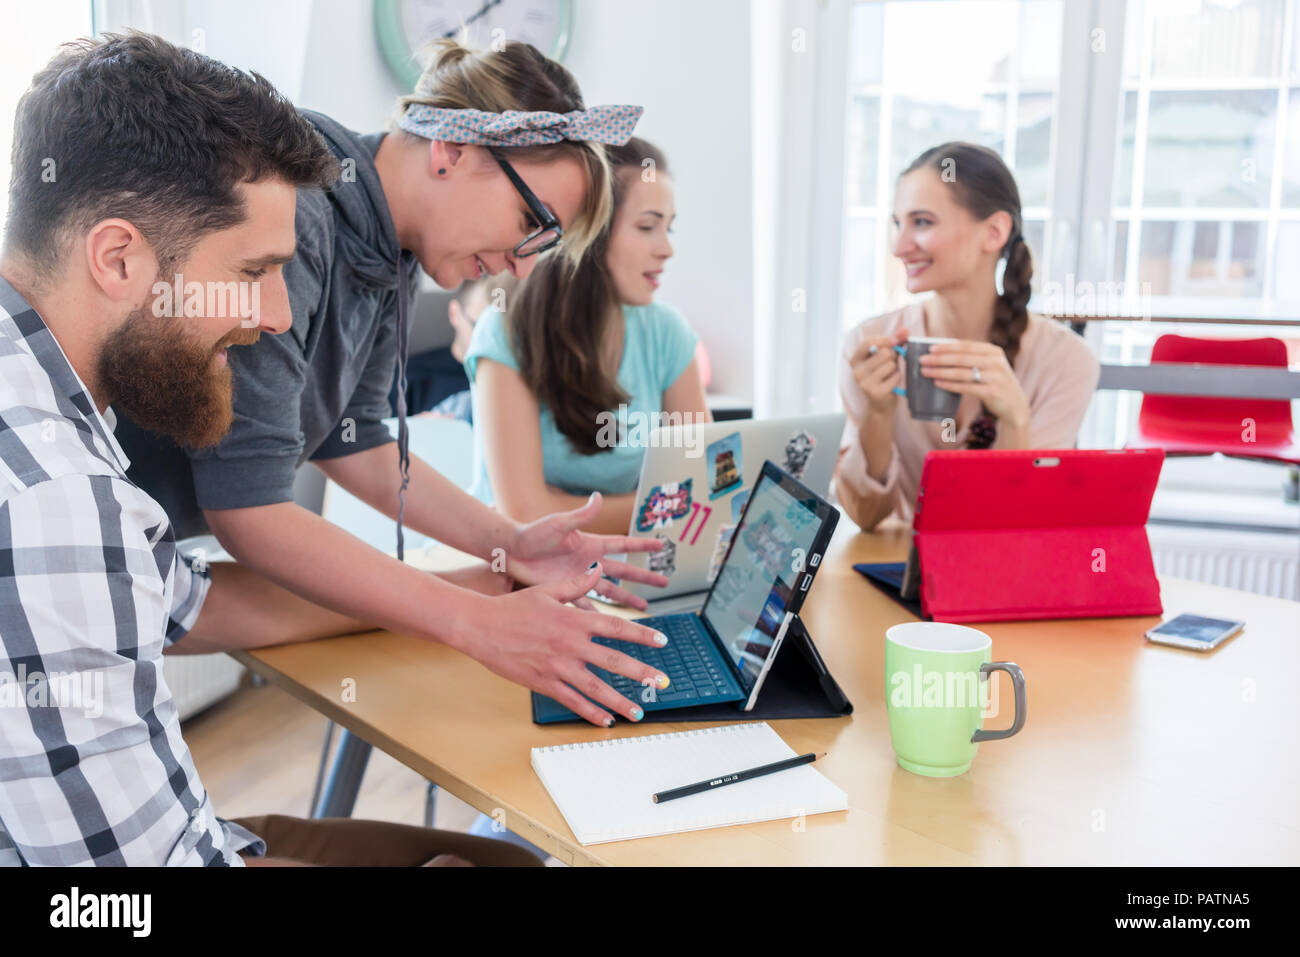 man and woman cooperating as co-workers in collaborative office  - Stock Image